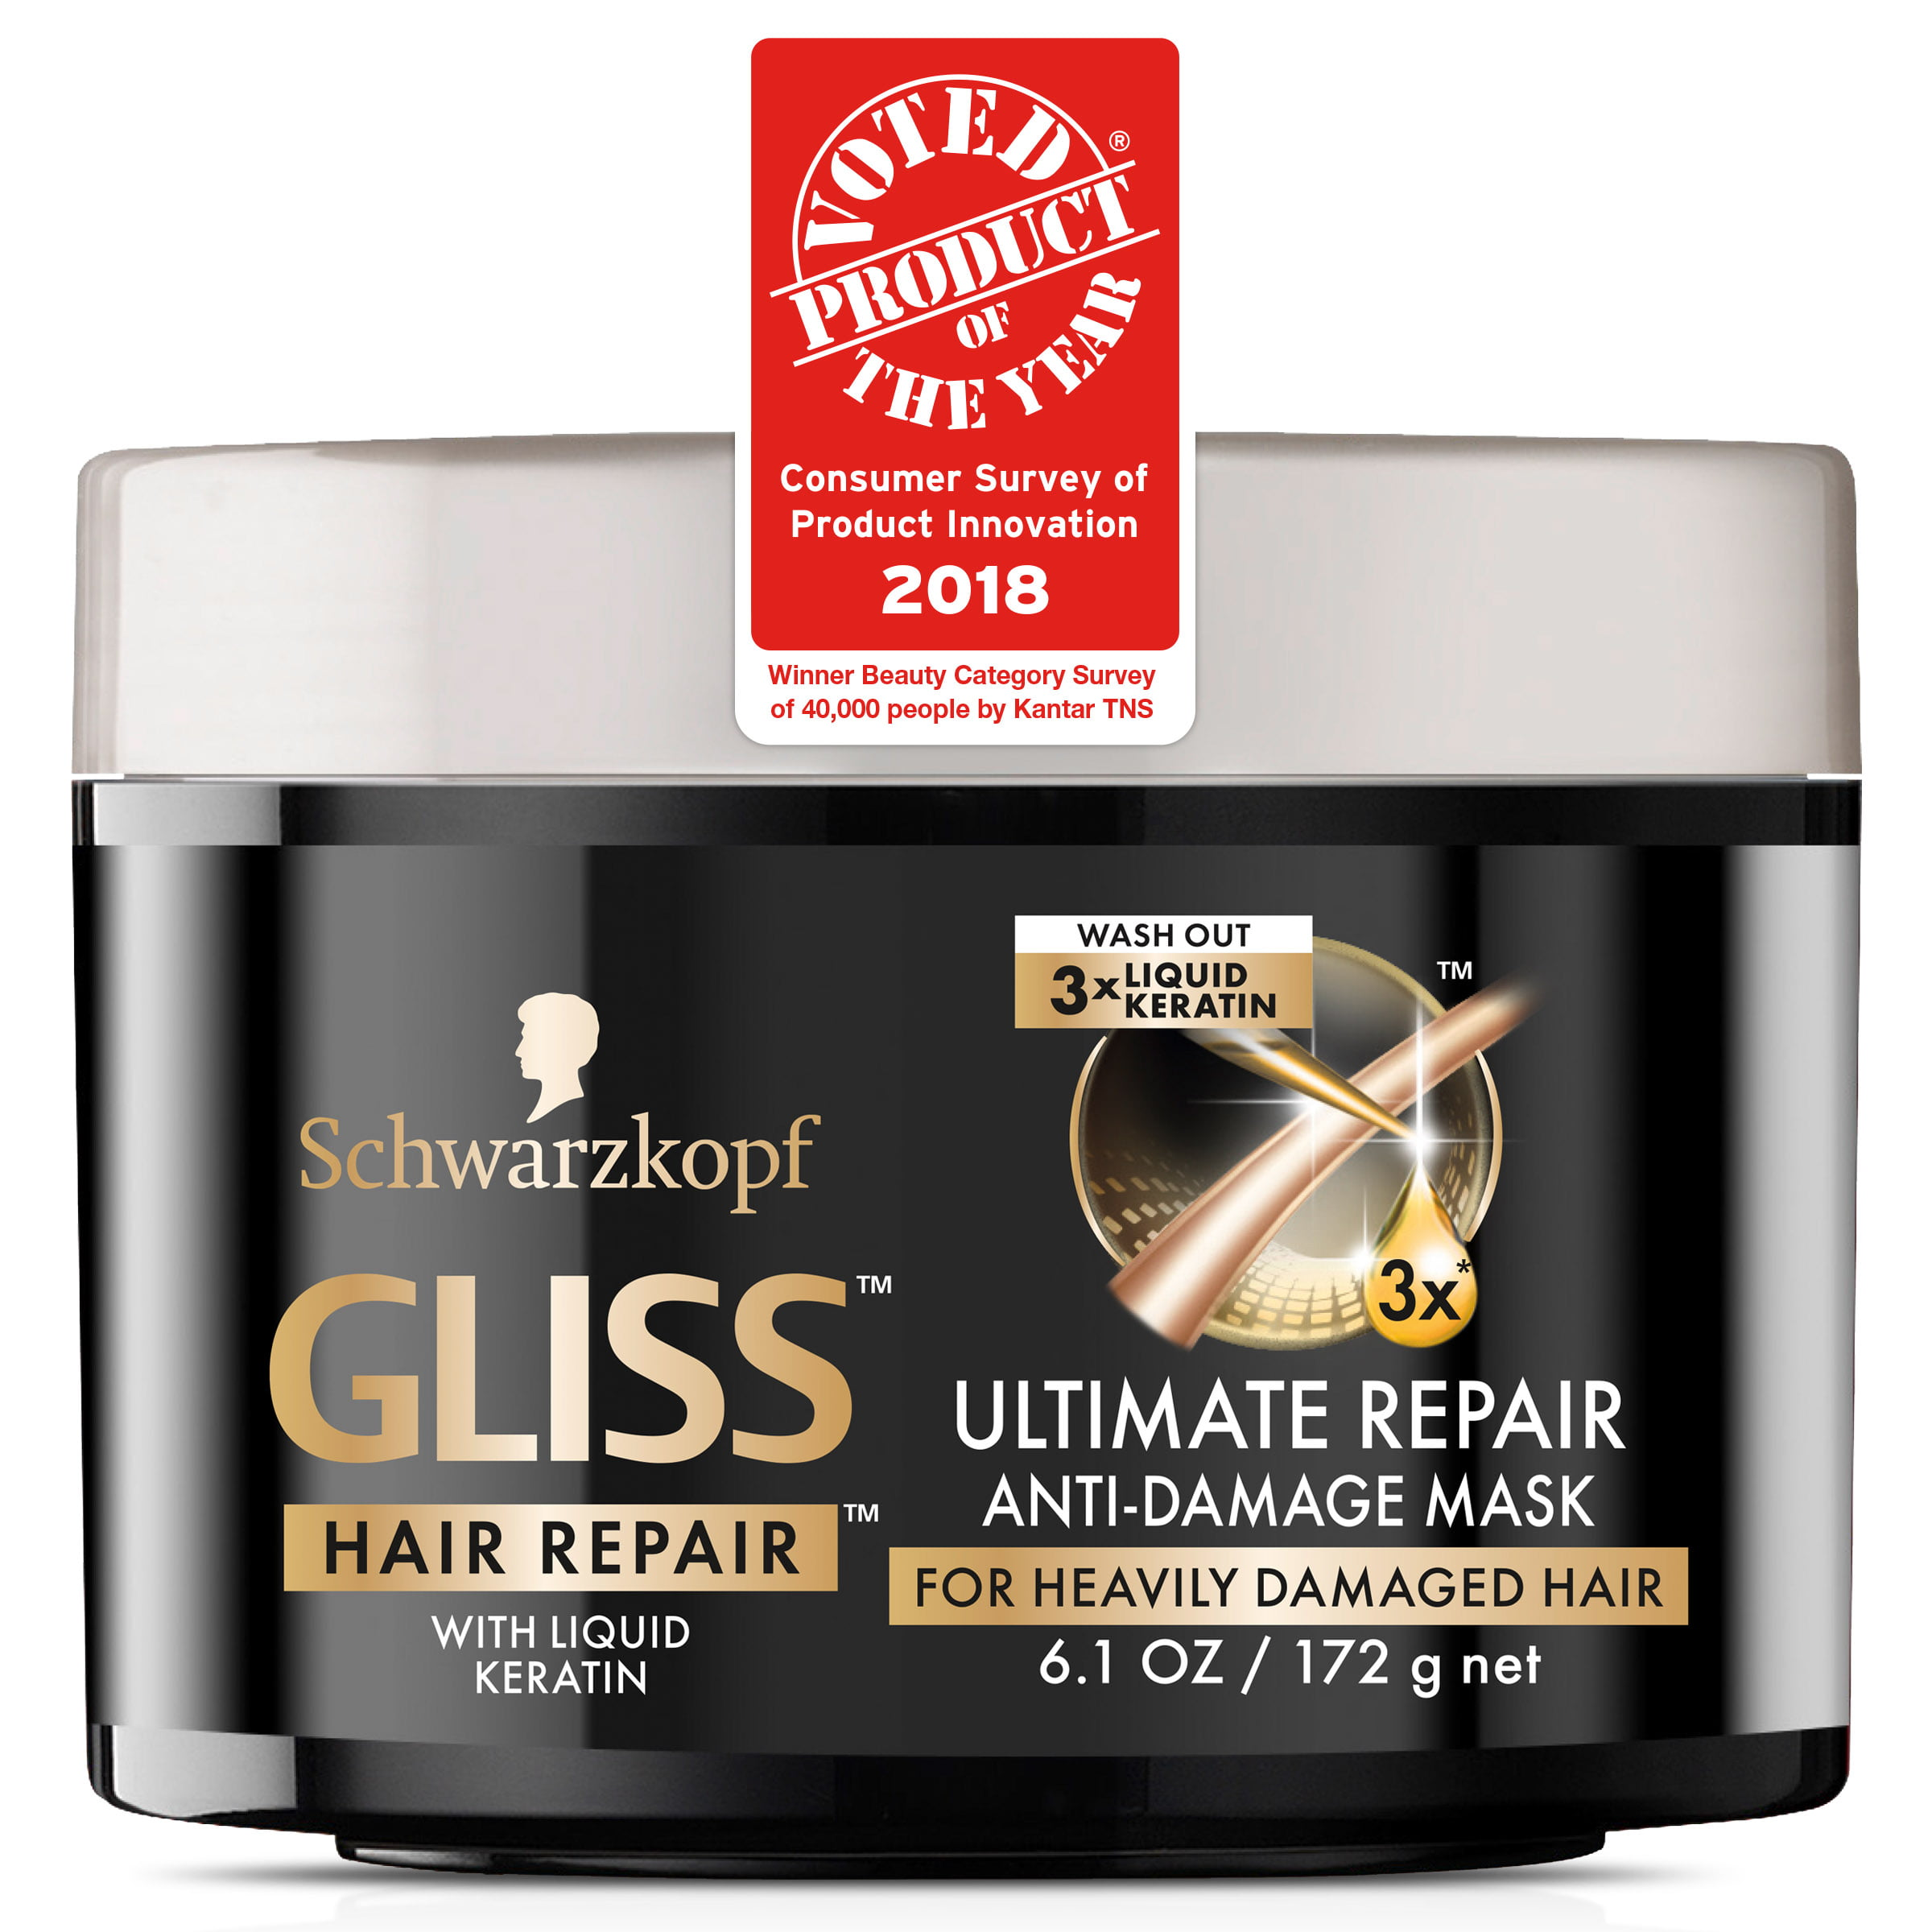 Schwarzkopf Gliss Hair Repair Ultimate Repair Anti Damage Mask For Heavily Damaged Hair - 6.1 oz